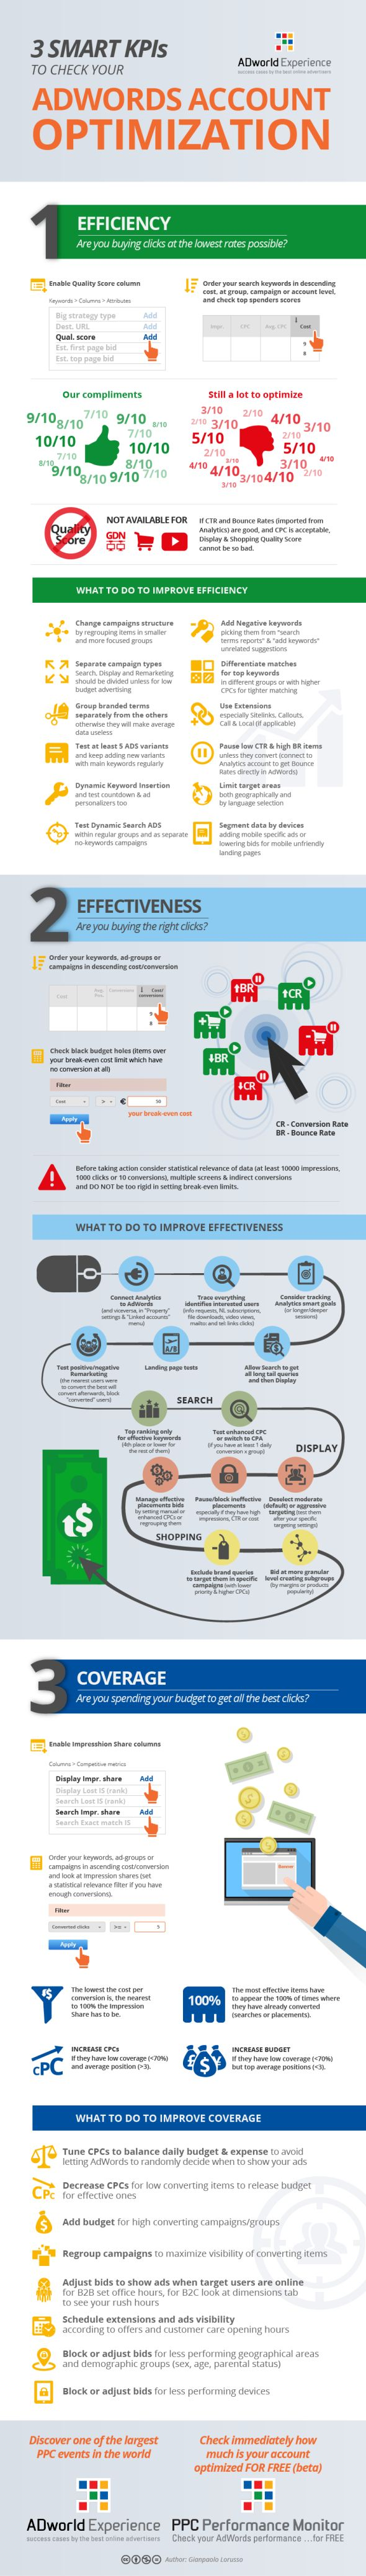 Advertising-Infographics-Measure-your-AdWords-optimization-with-3-smart-KPIs Advertising Infographics : Measure your AdWords optimization with 3 smart KPIs